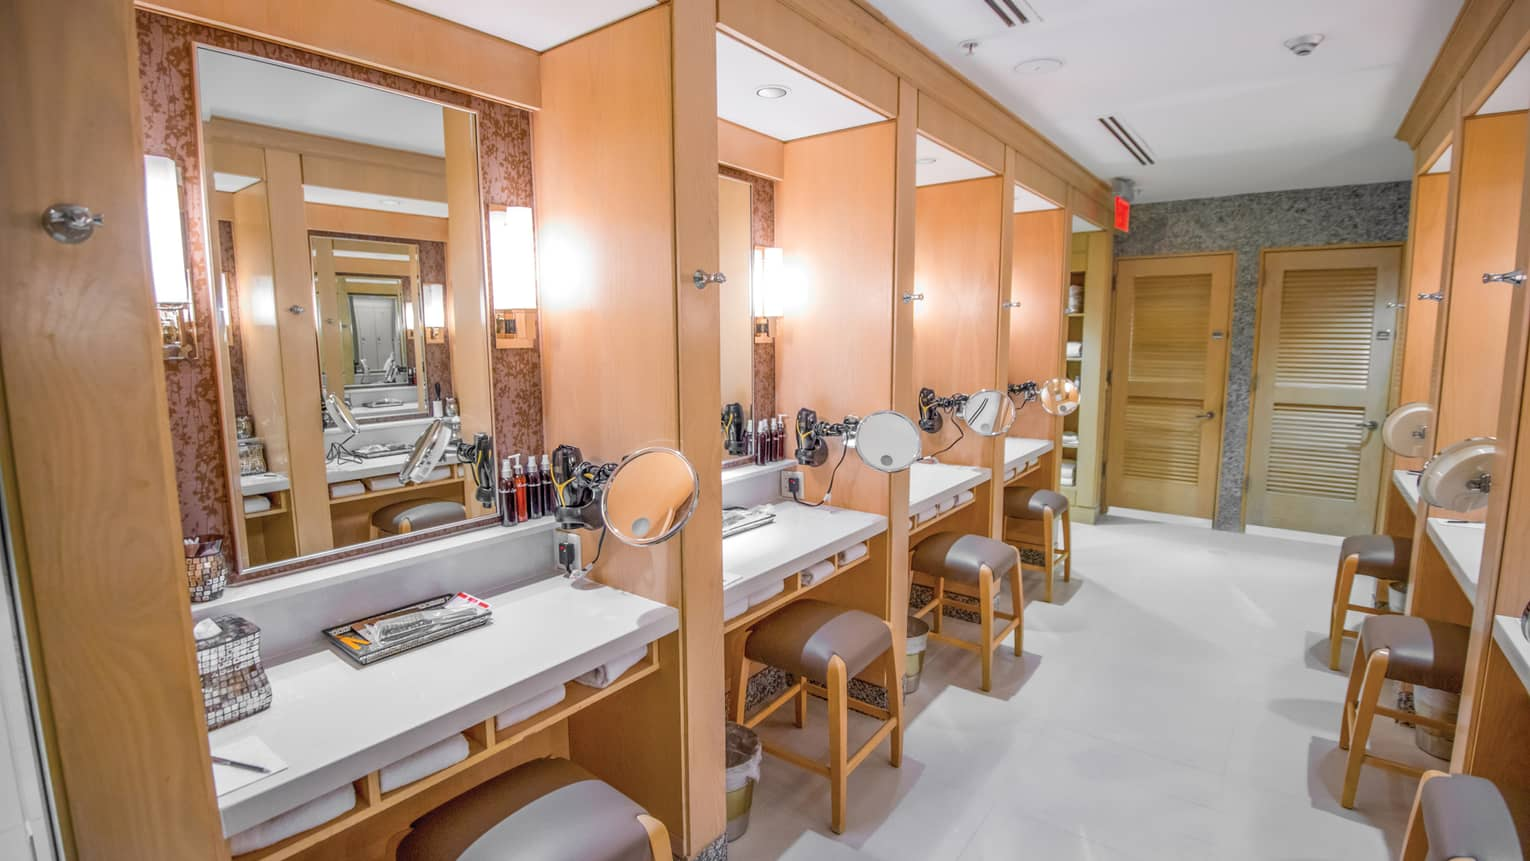 Fitness Centre dressing tables in rows along walls, each with mirrors, shaving mirrors, white towels, stools